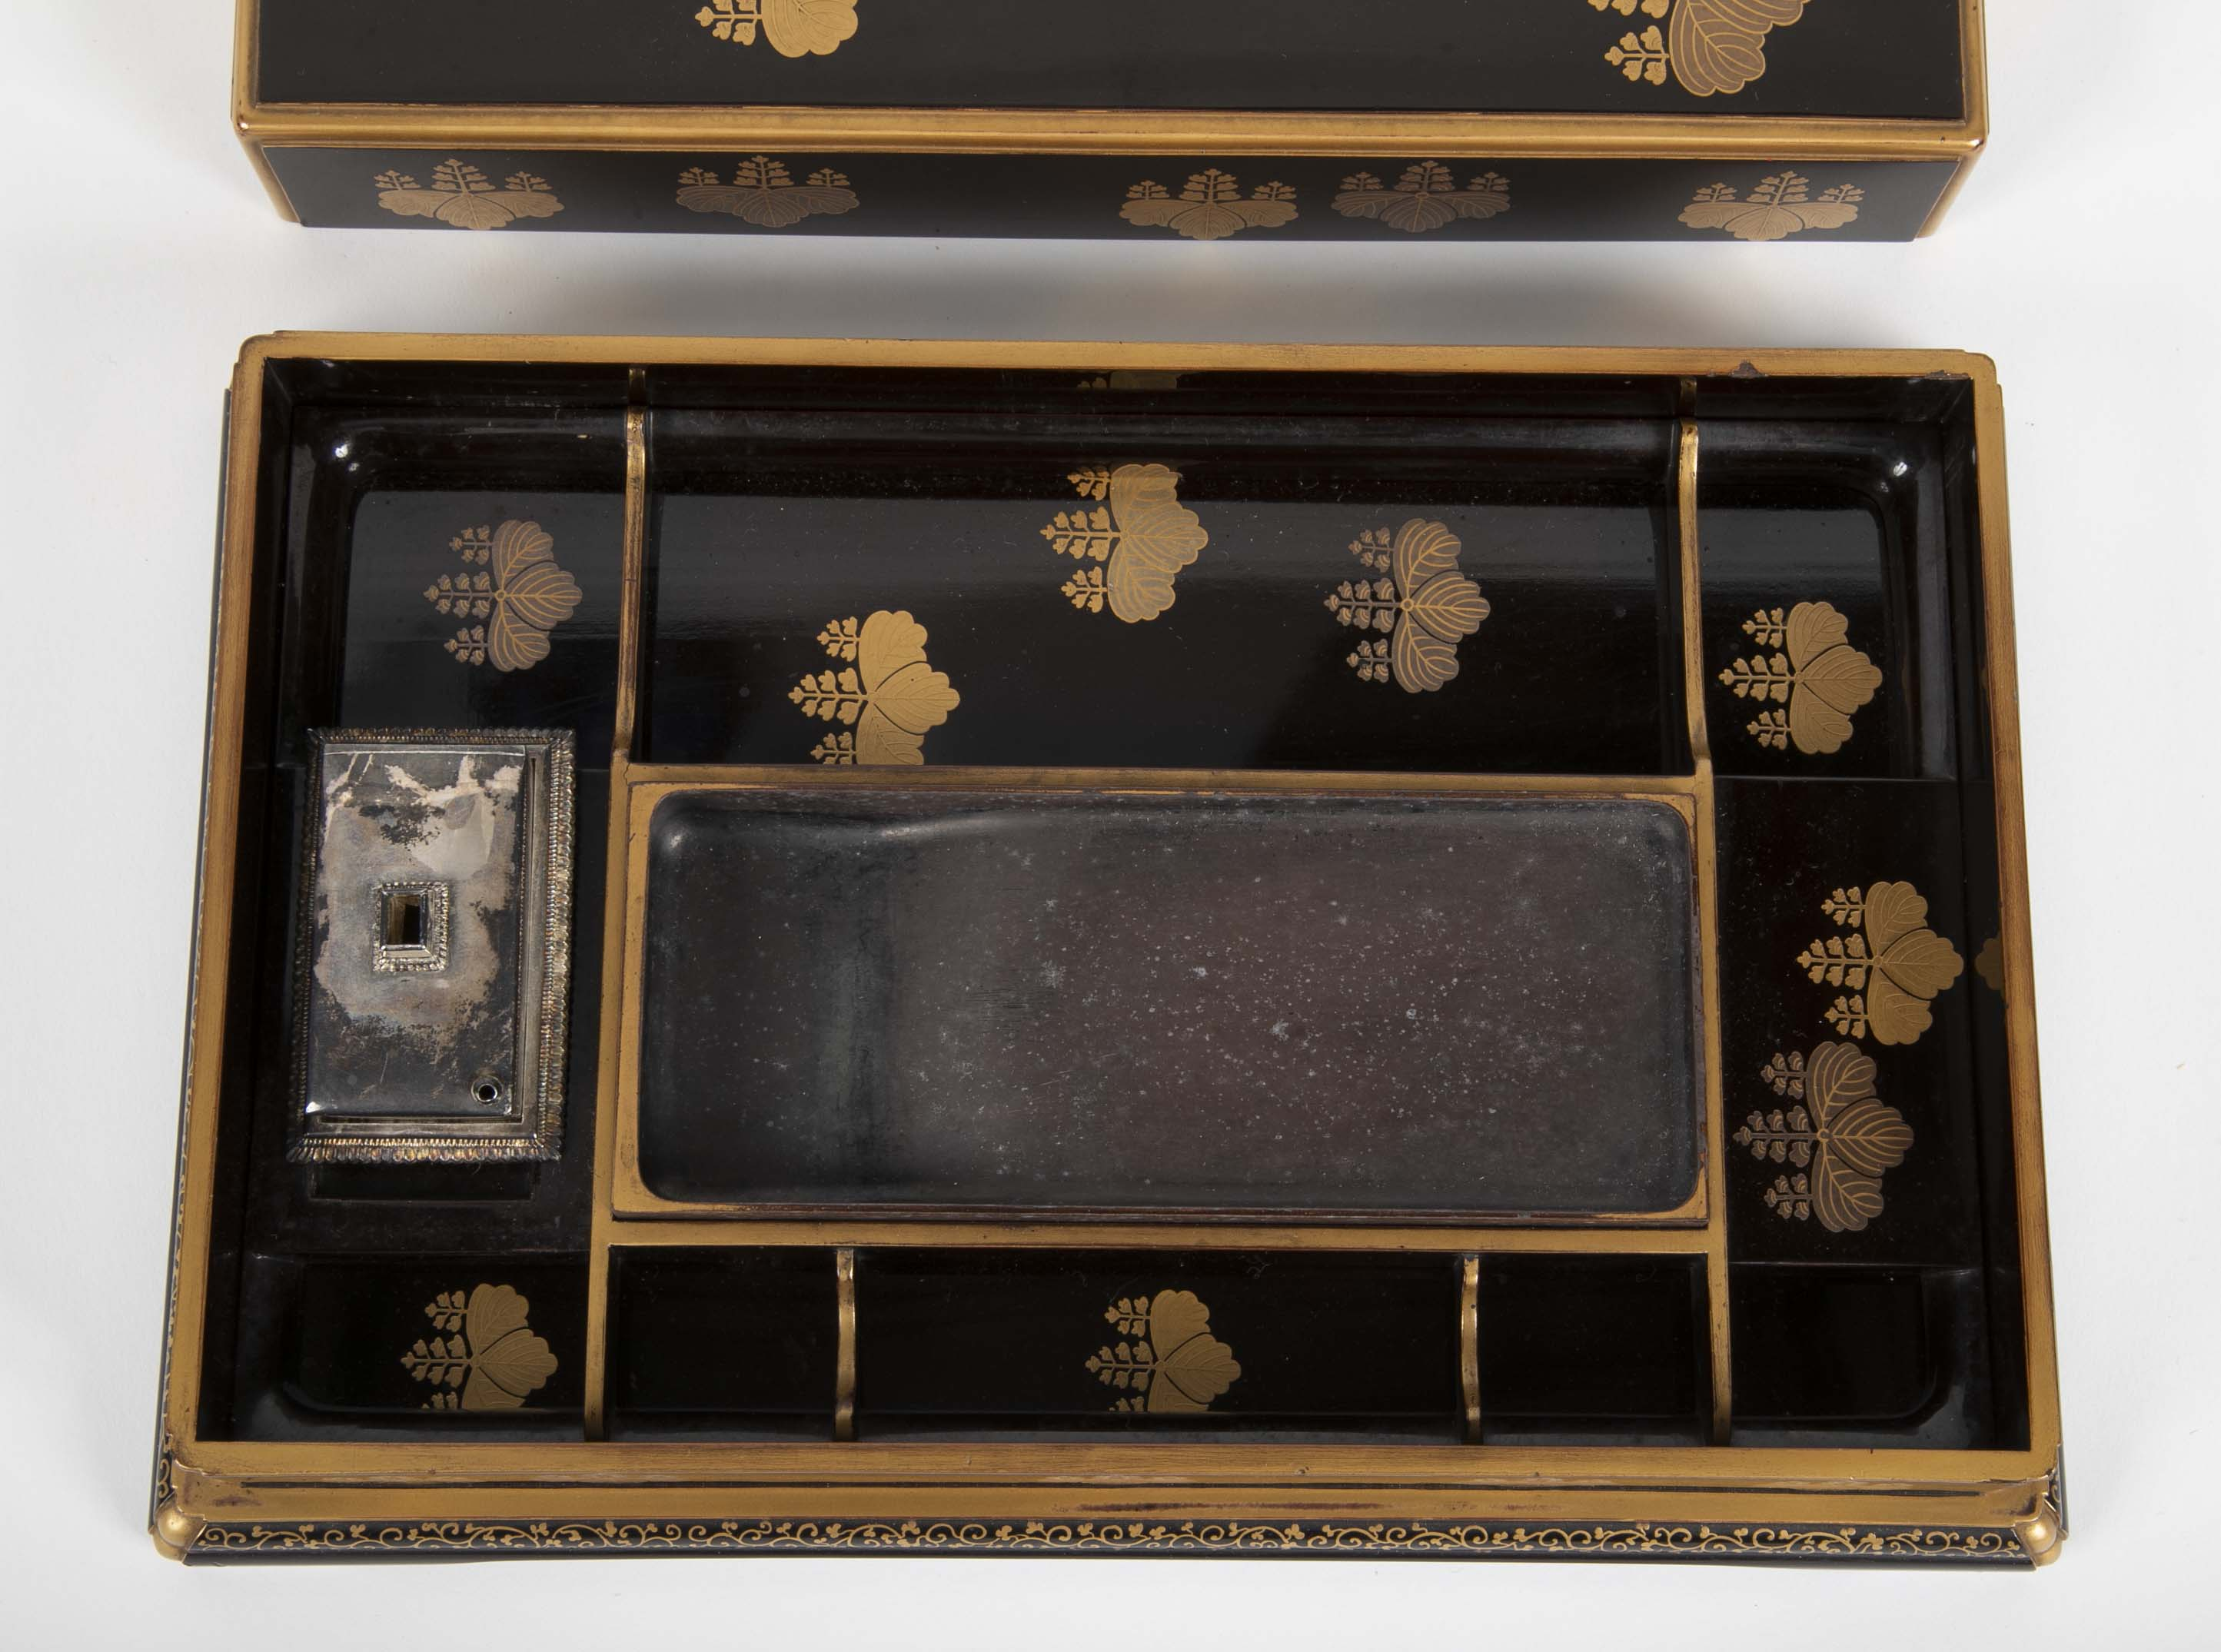 Black Lacquer Japanese Ink Stone Box in Presentation Case